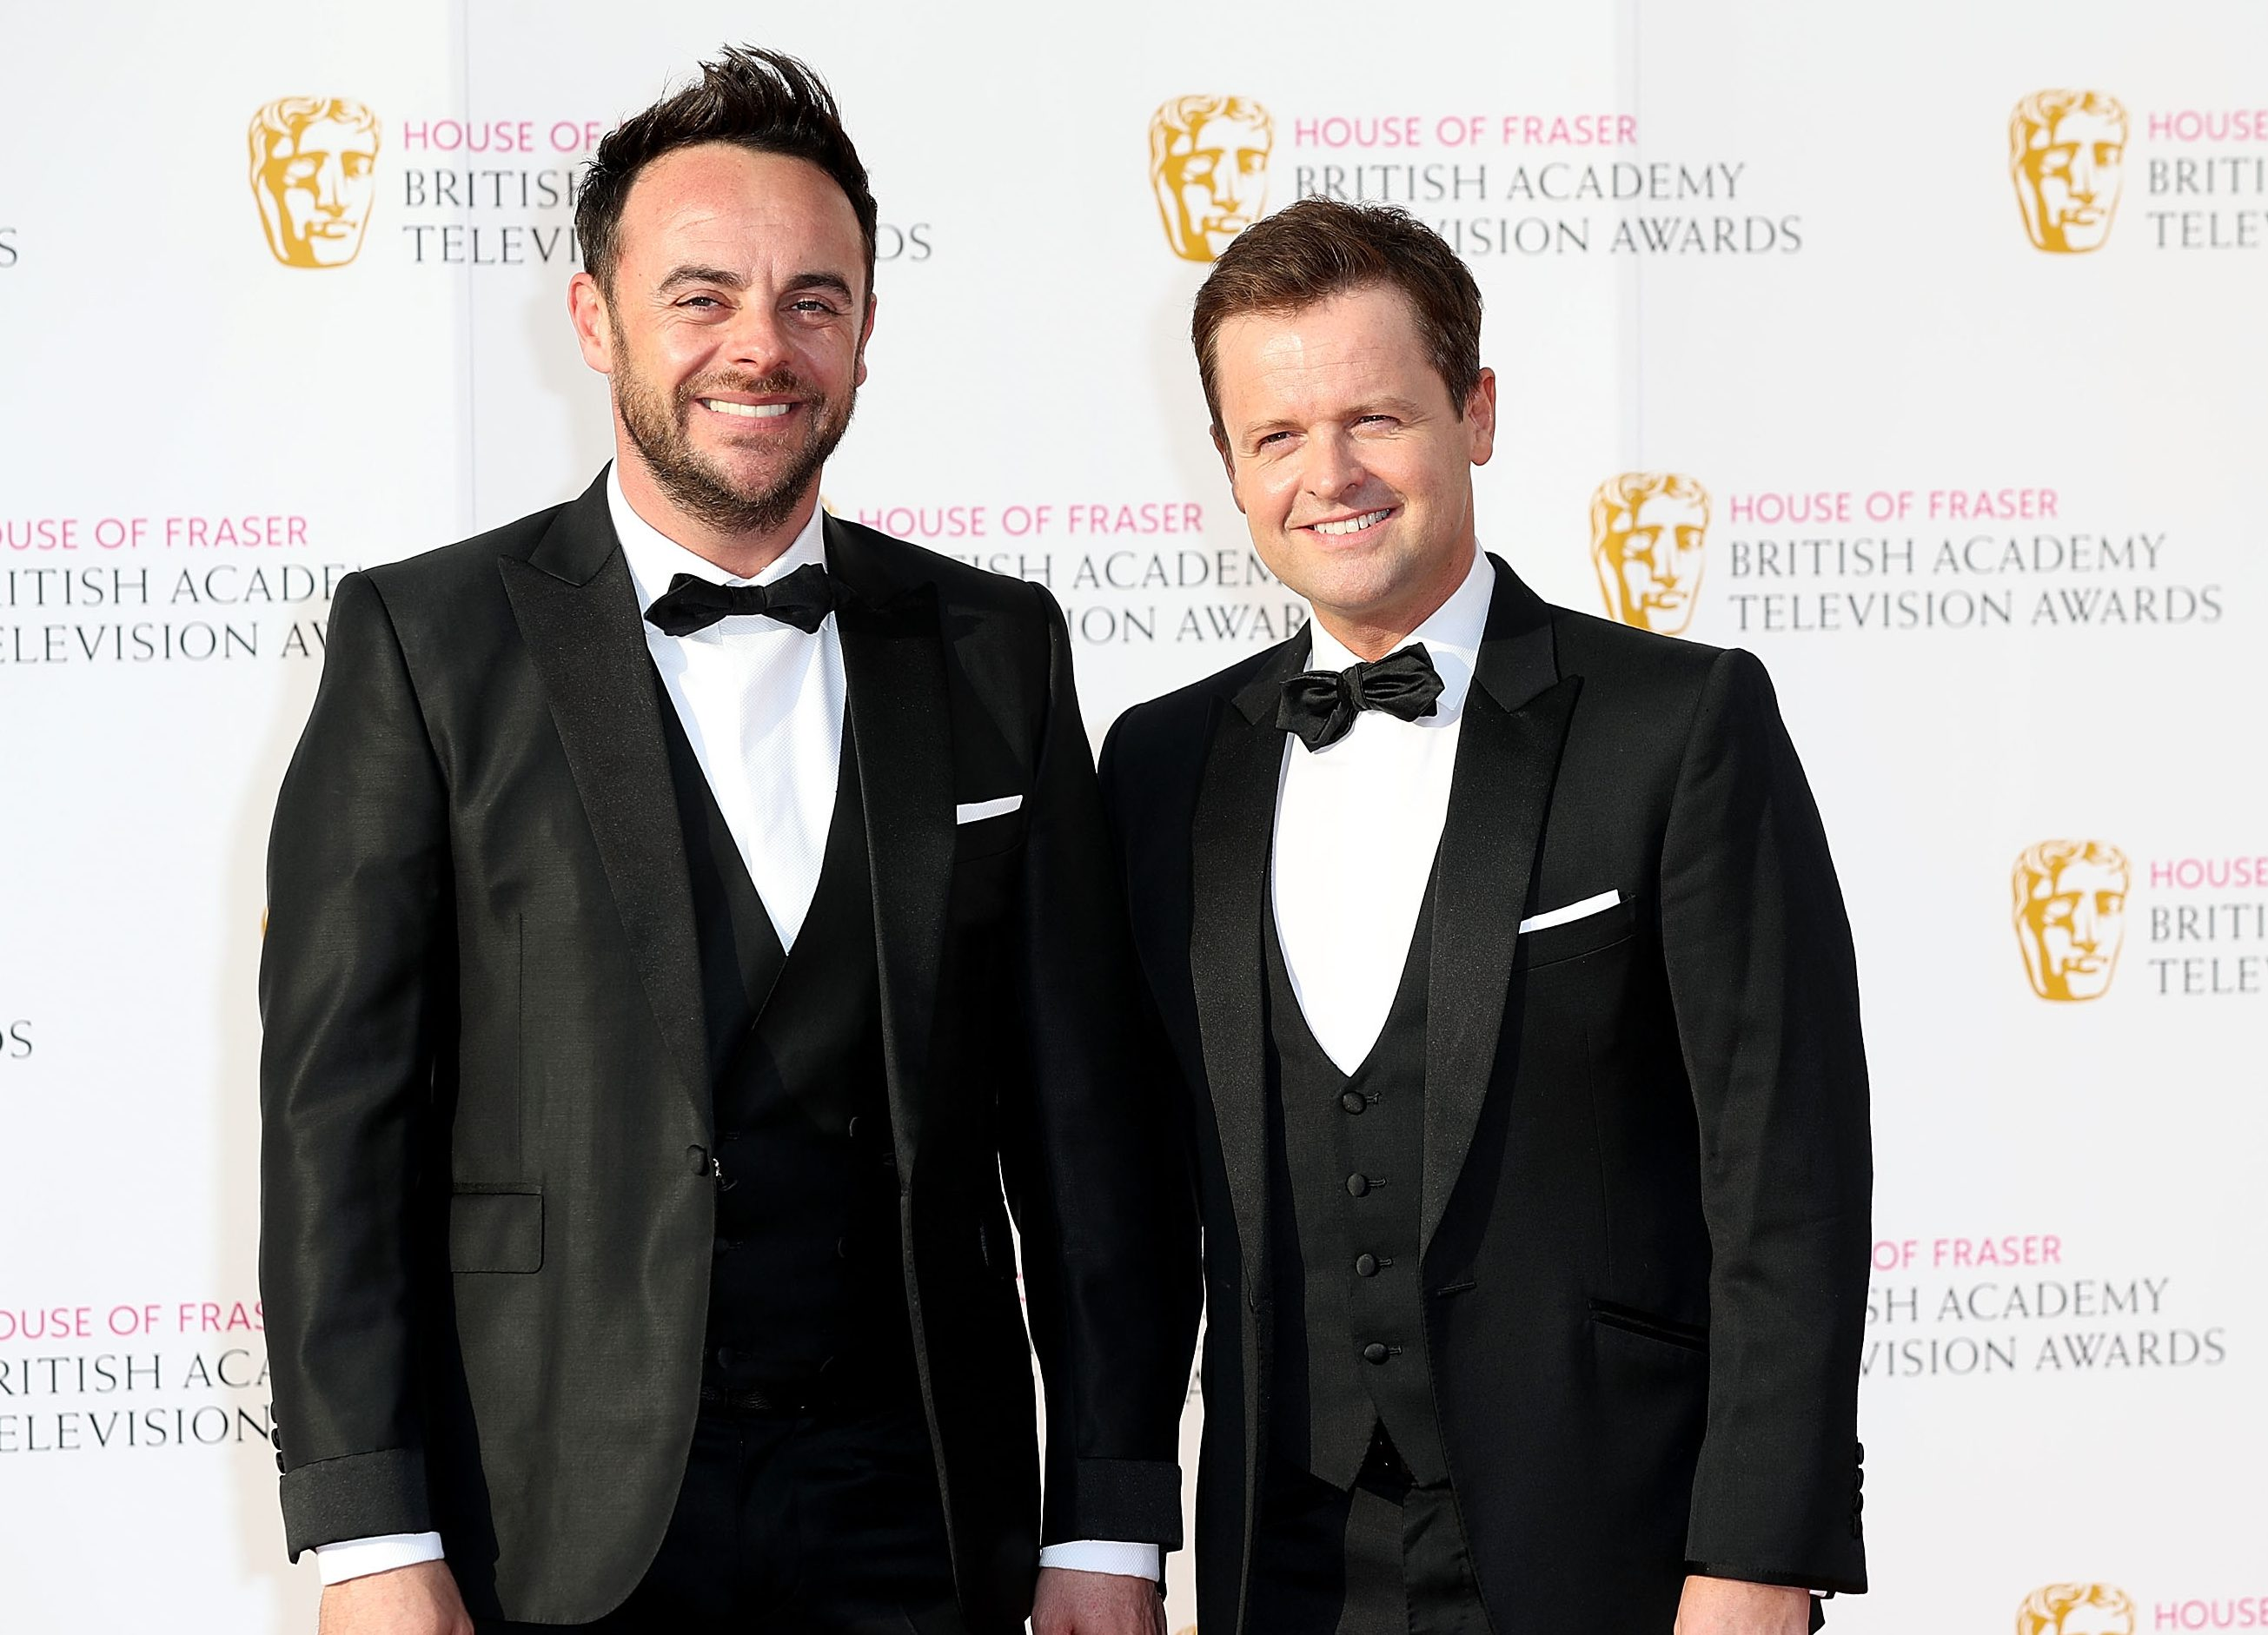 Seasoned professionals Ant and Dec make a TV presenting gaffe on I'm A Celebrity